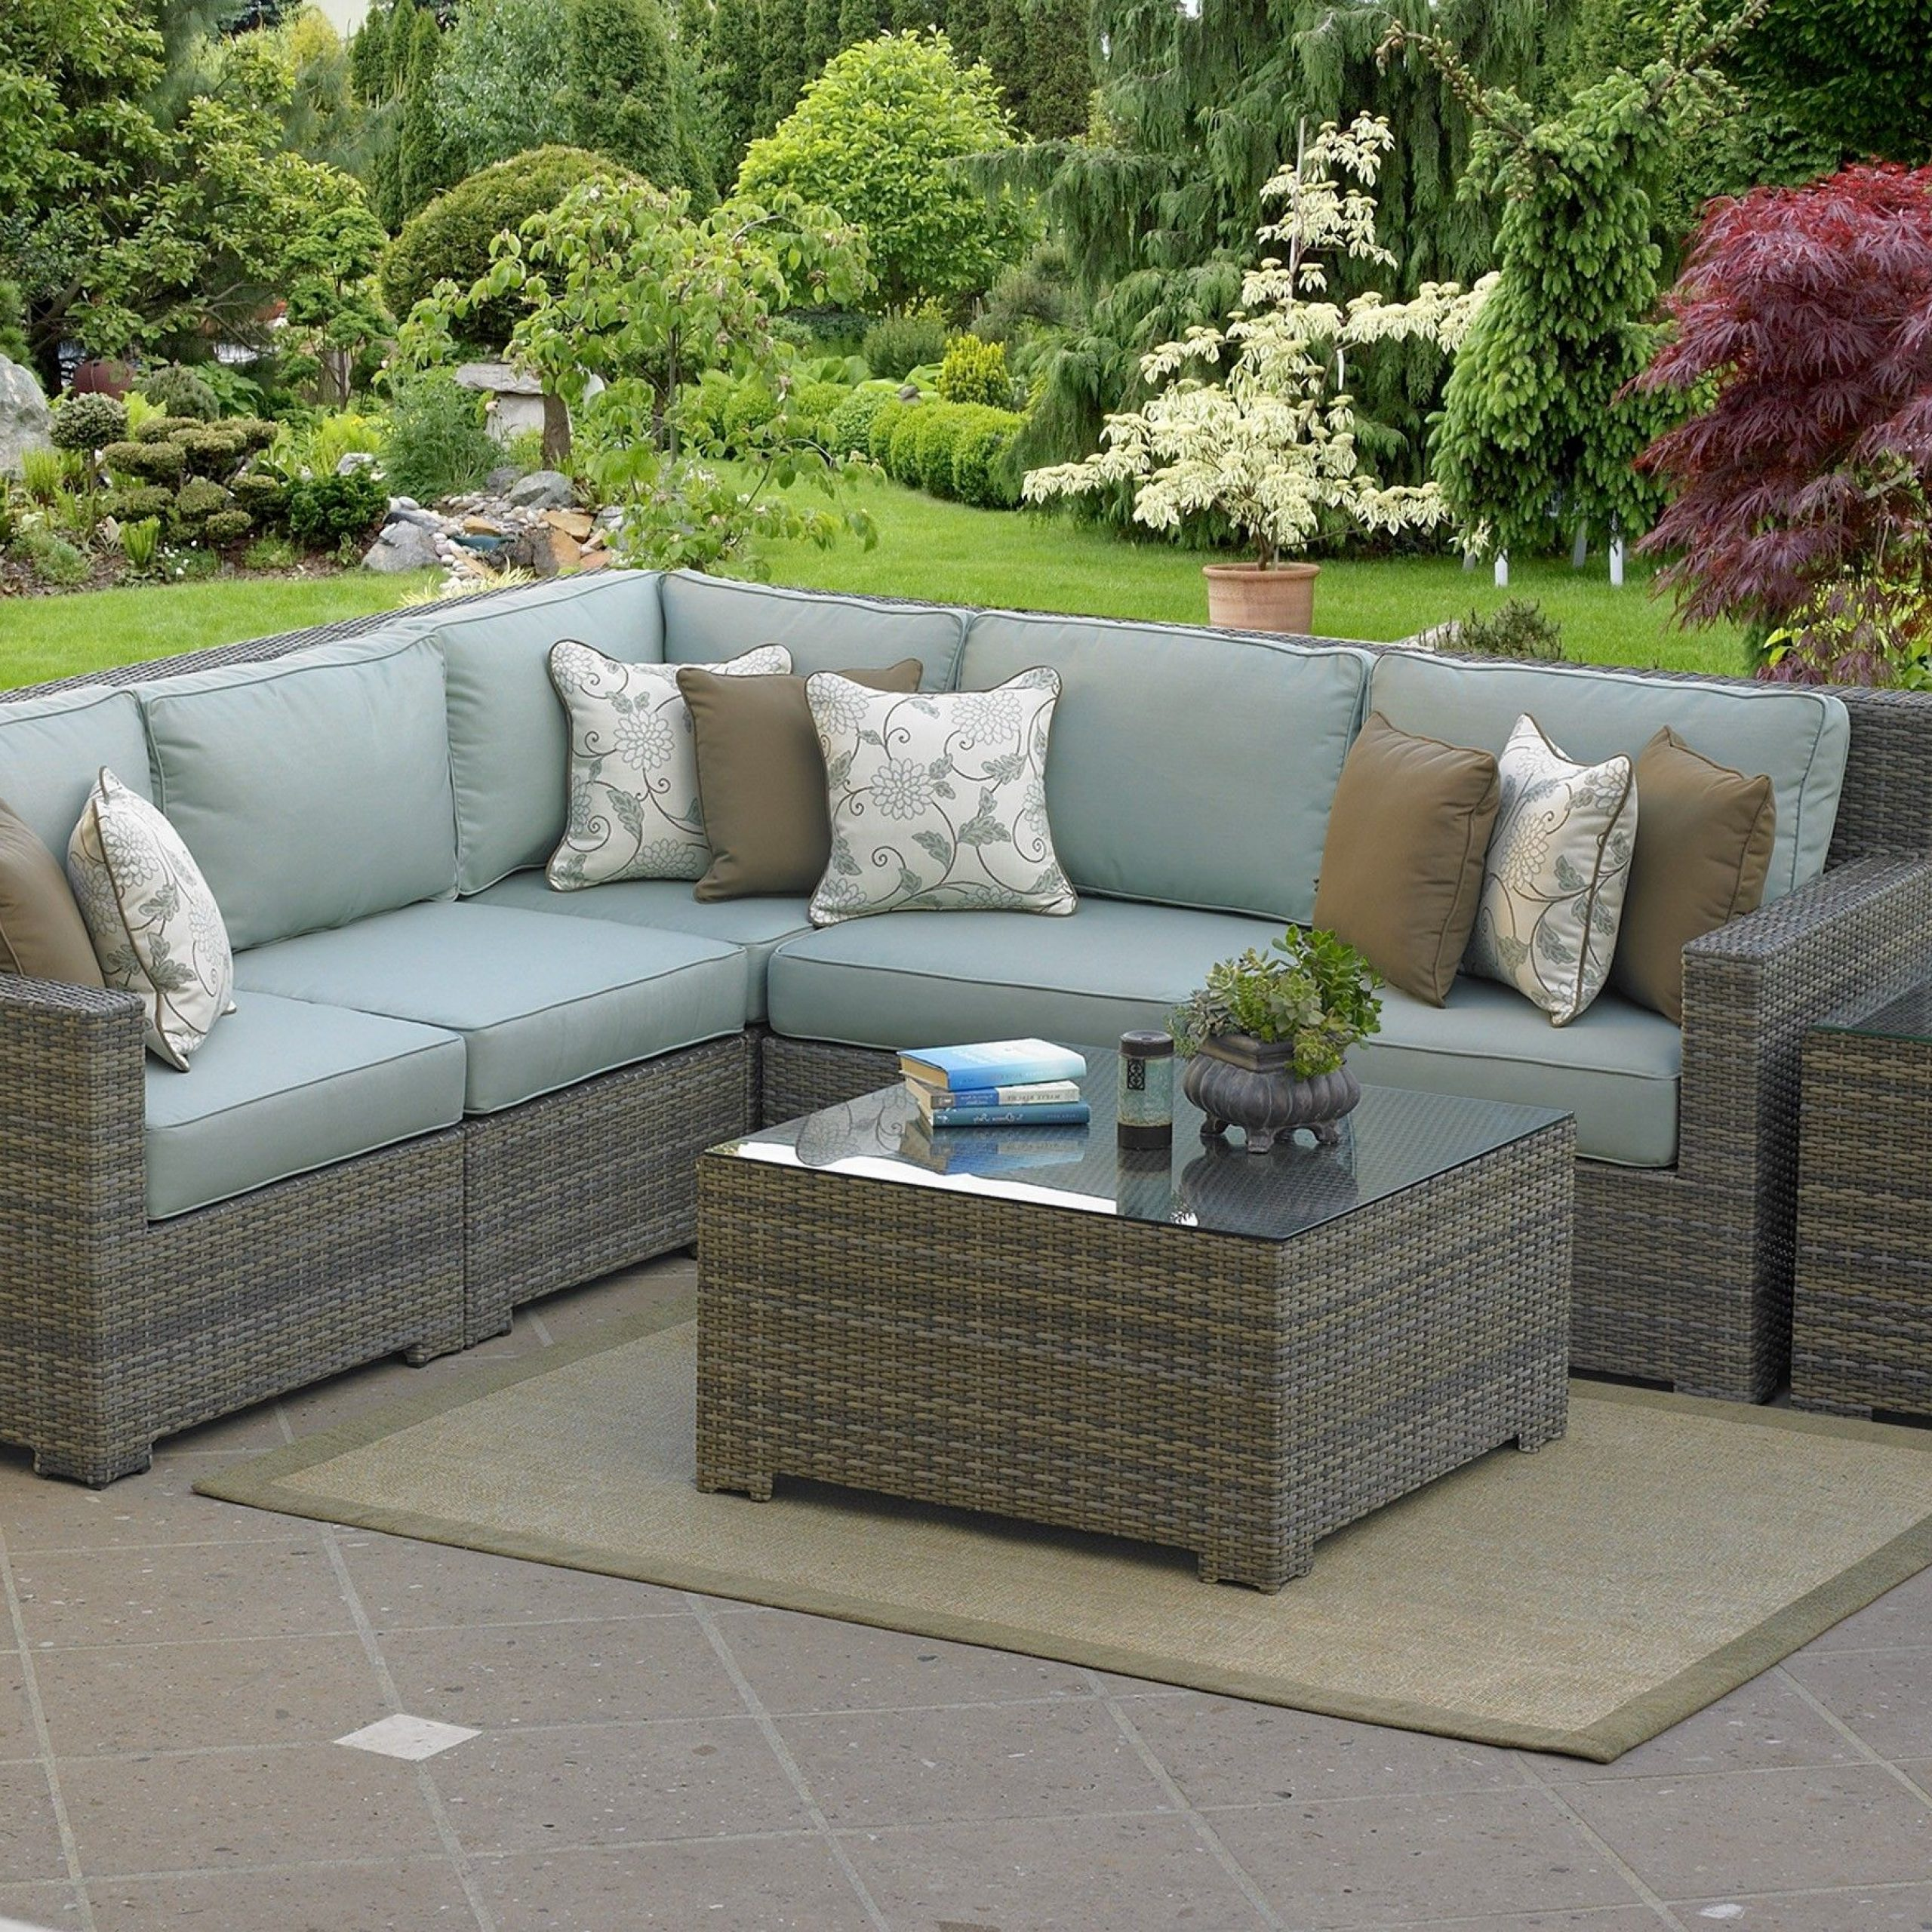 Popular Malibu High Back 5 Pc Outdoor L Sectional 90 Degree In 2019 Throughout Carina 4 Piece Sectionals Seating Group With Cushions (View 19 of 25)